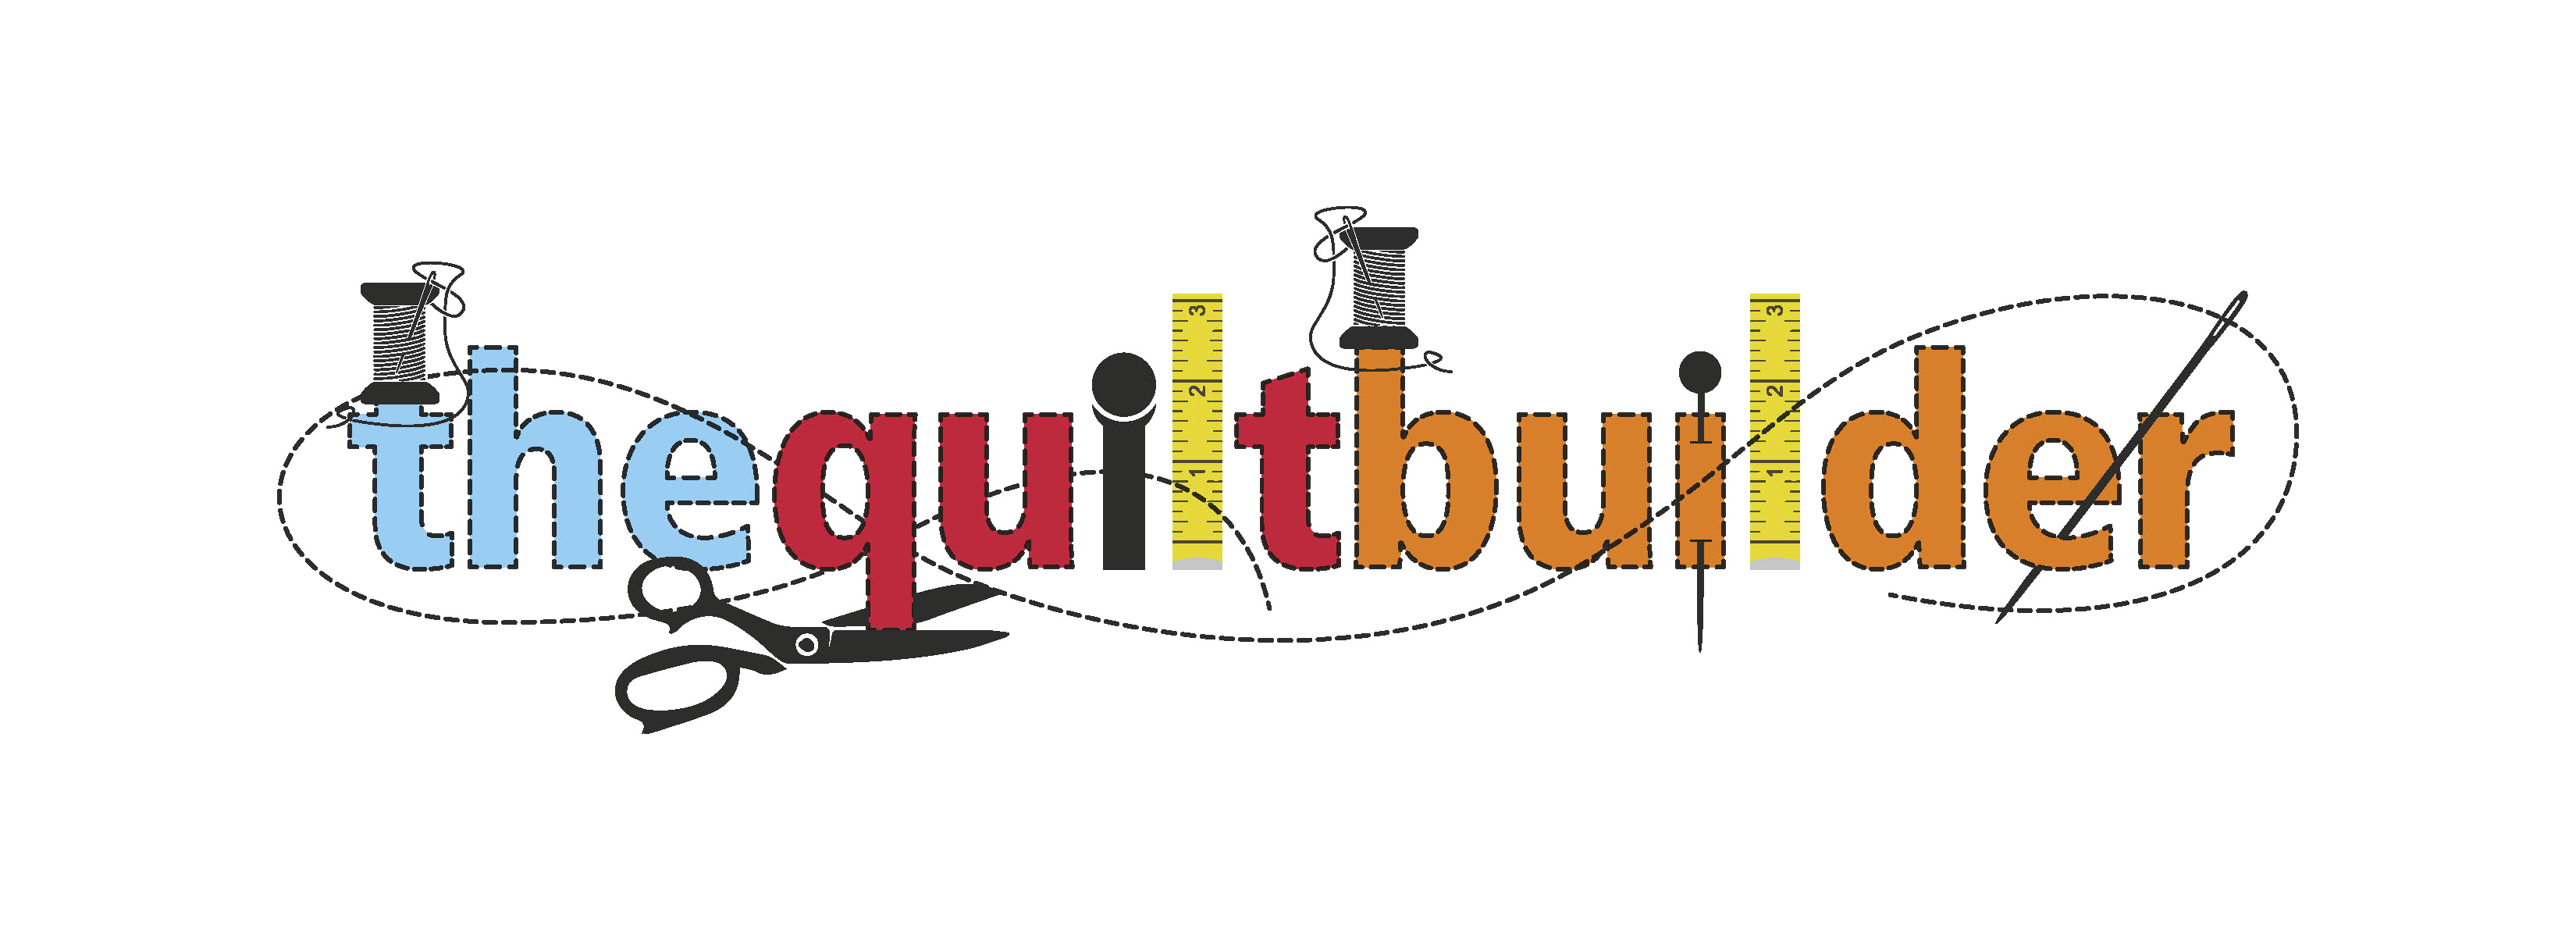 Oakville centre you know. Quilting clipart sewing logo